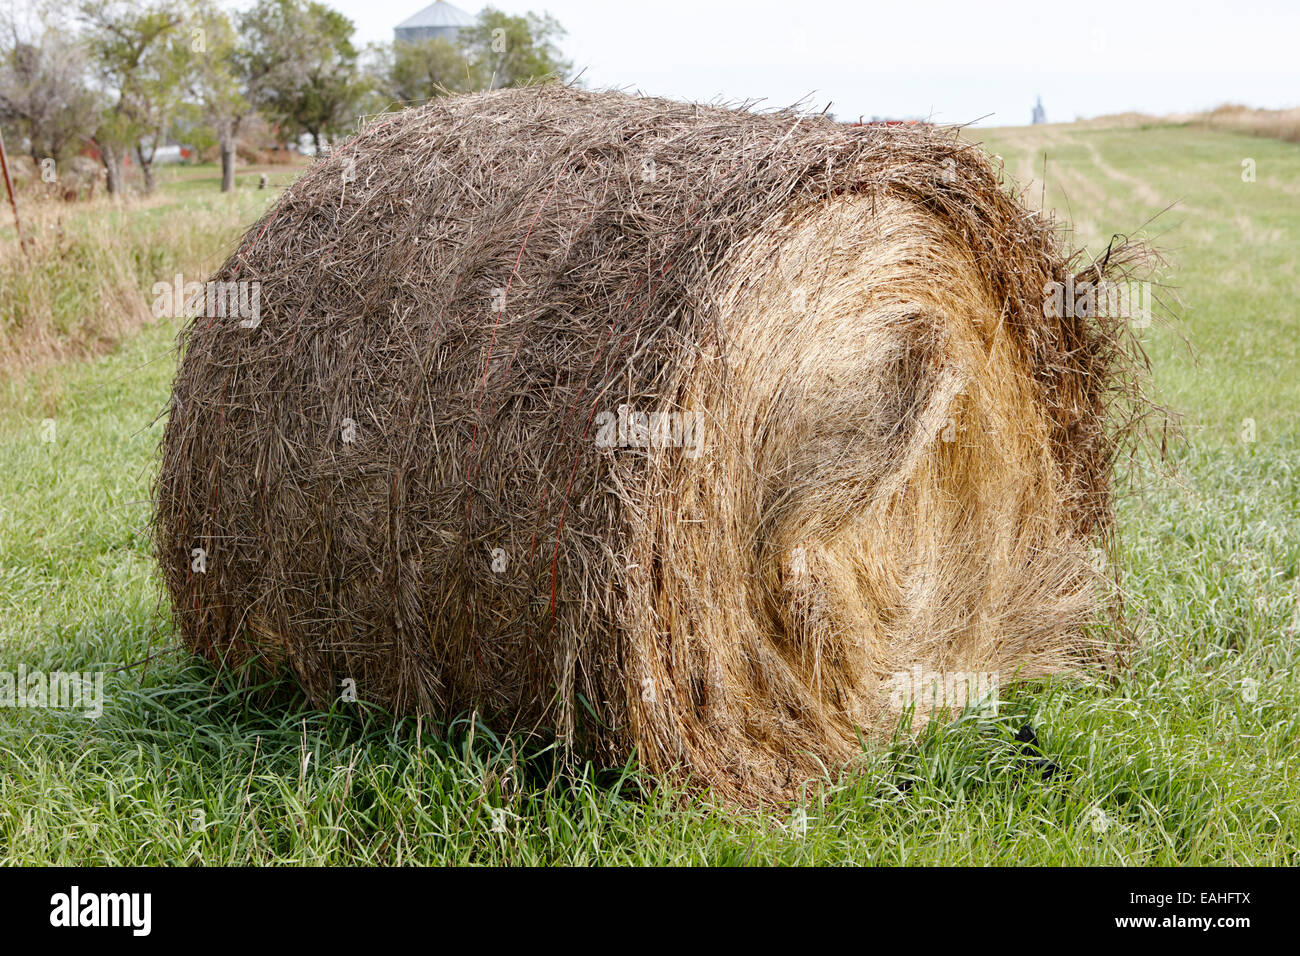 Feed Hay Rolled Hay Bale In A Grass Field For Winter Animal Feed